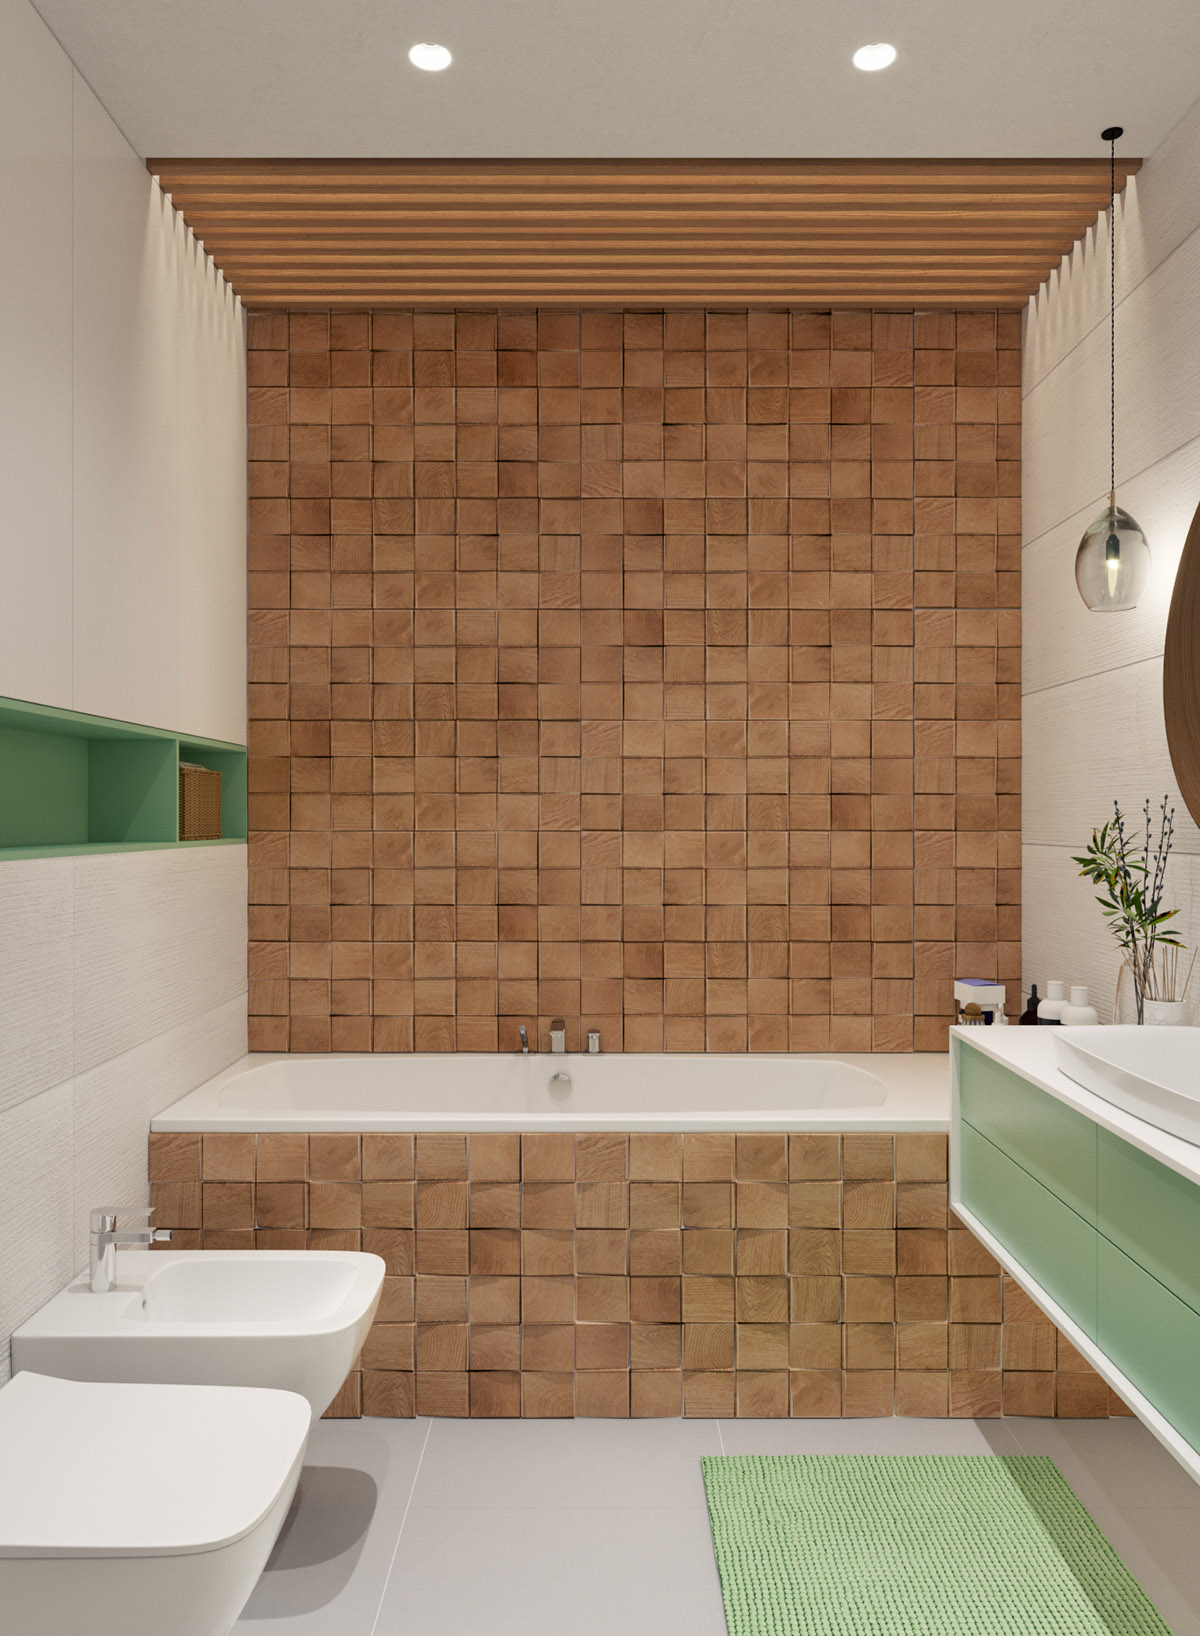 wood-tile-bathtub-enclosure